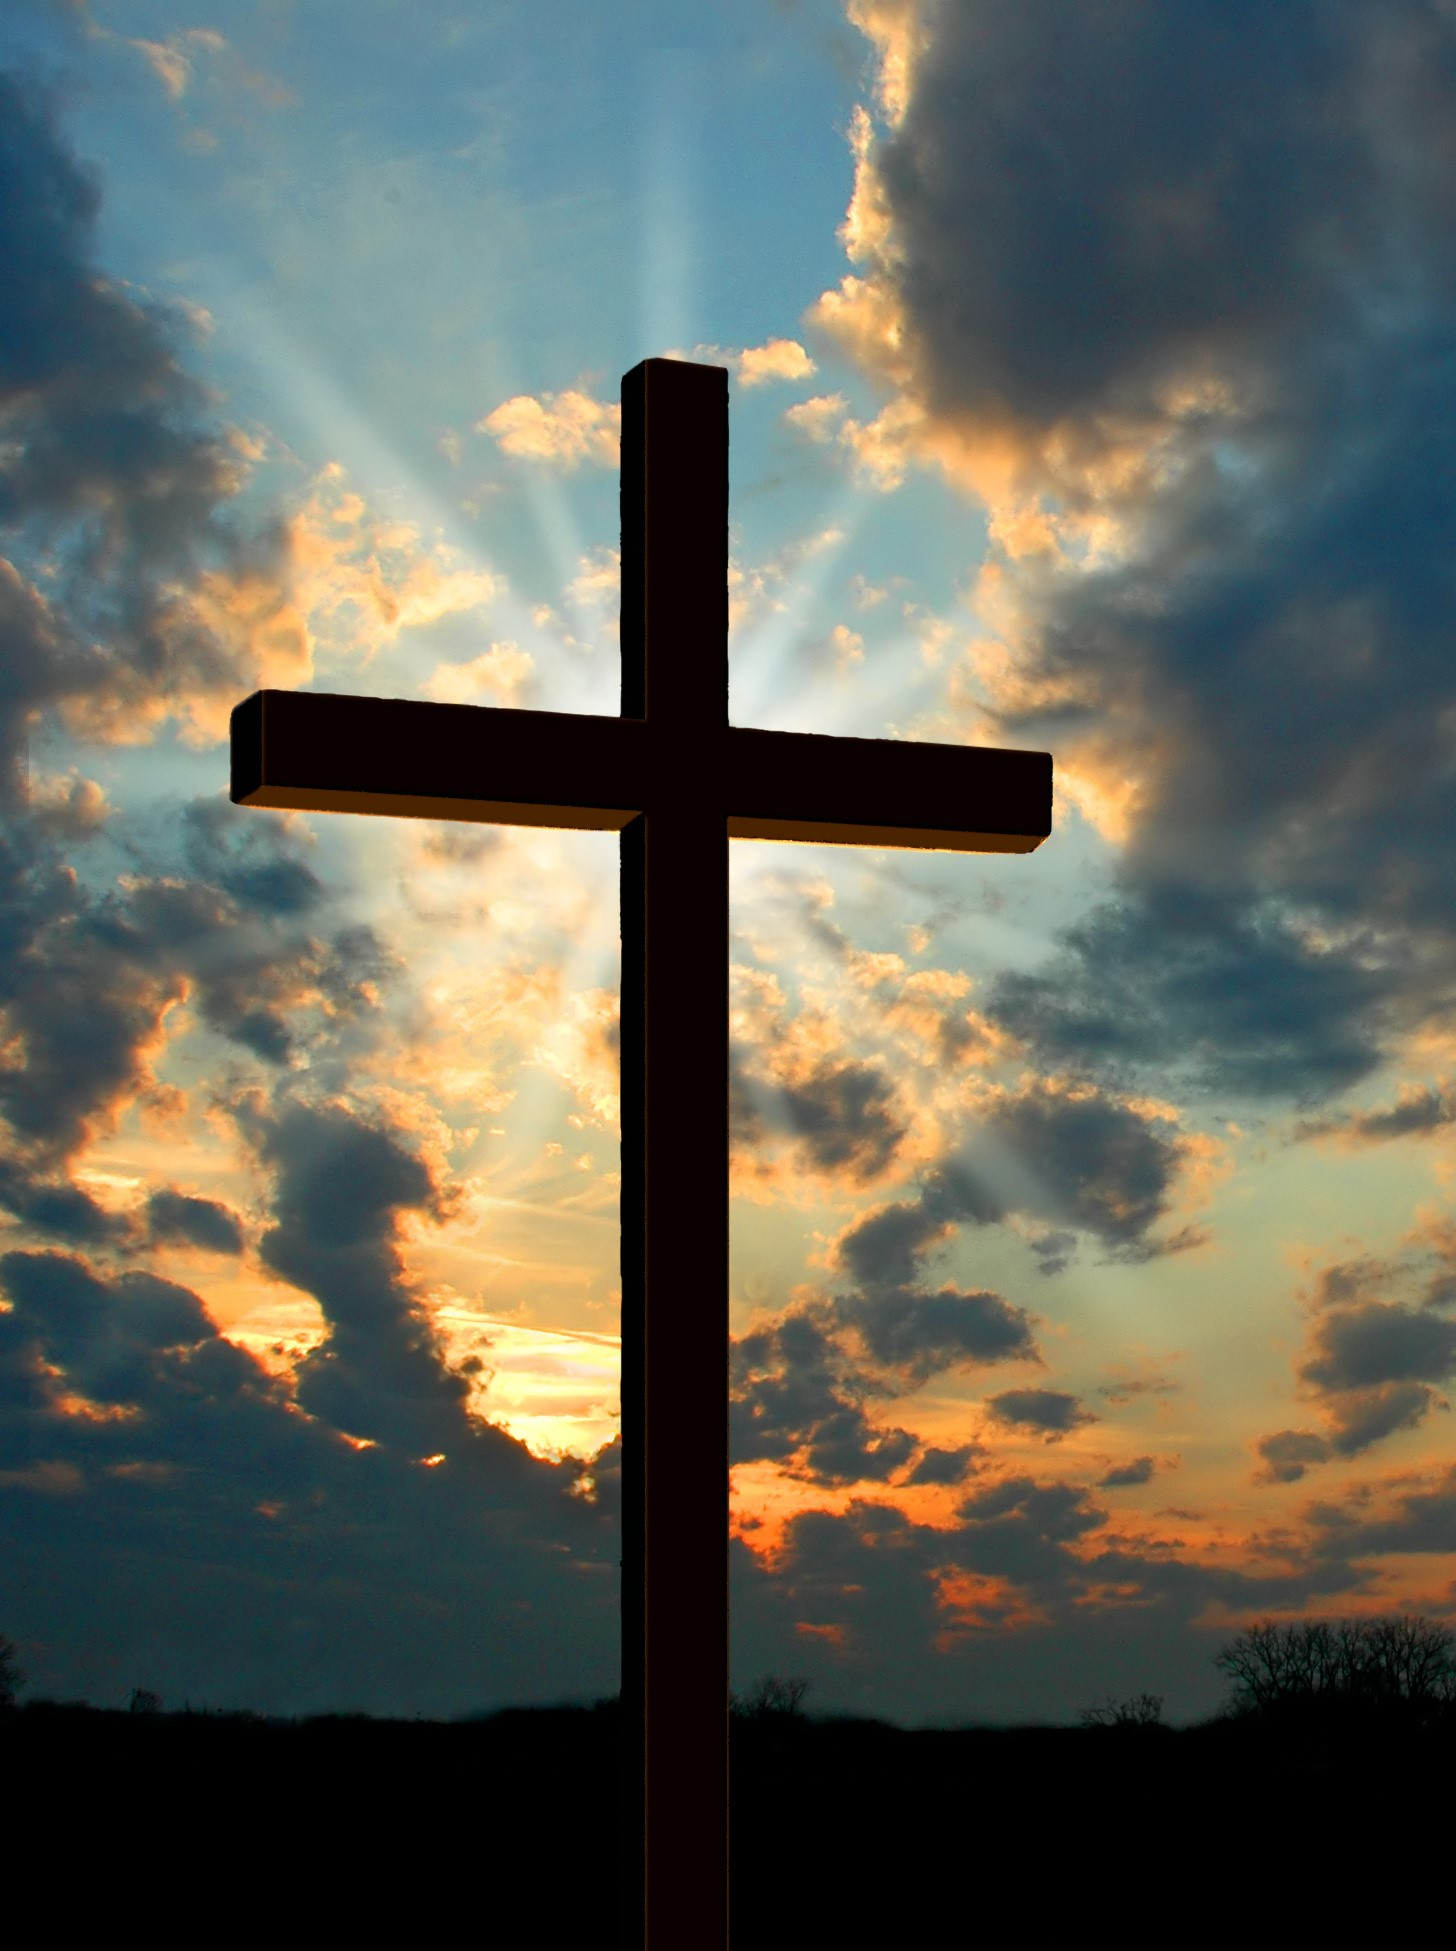 Work for salvation of your members, cleric tells church ...